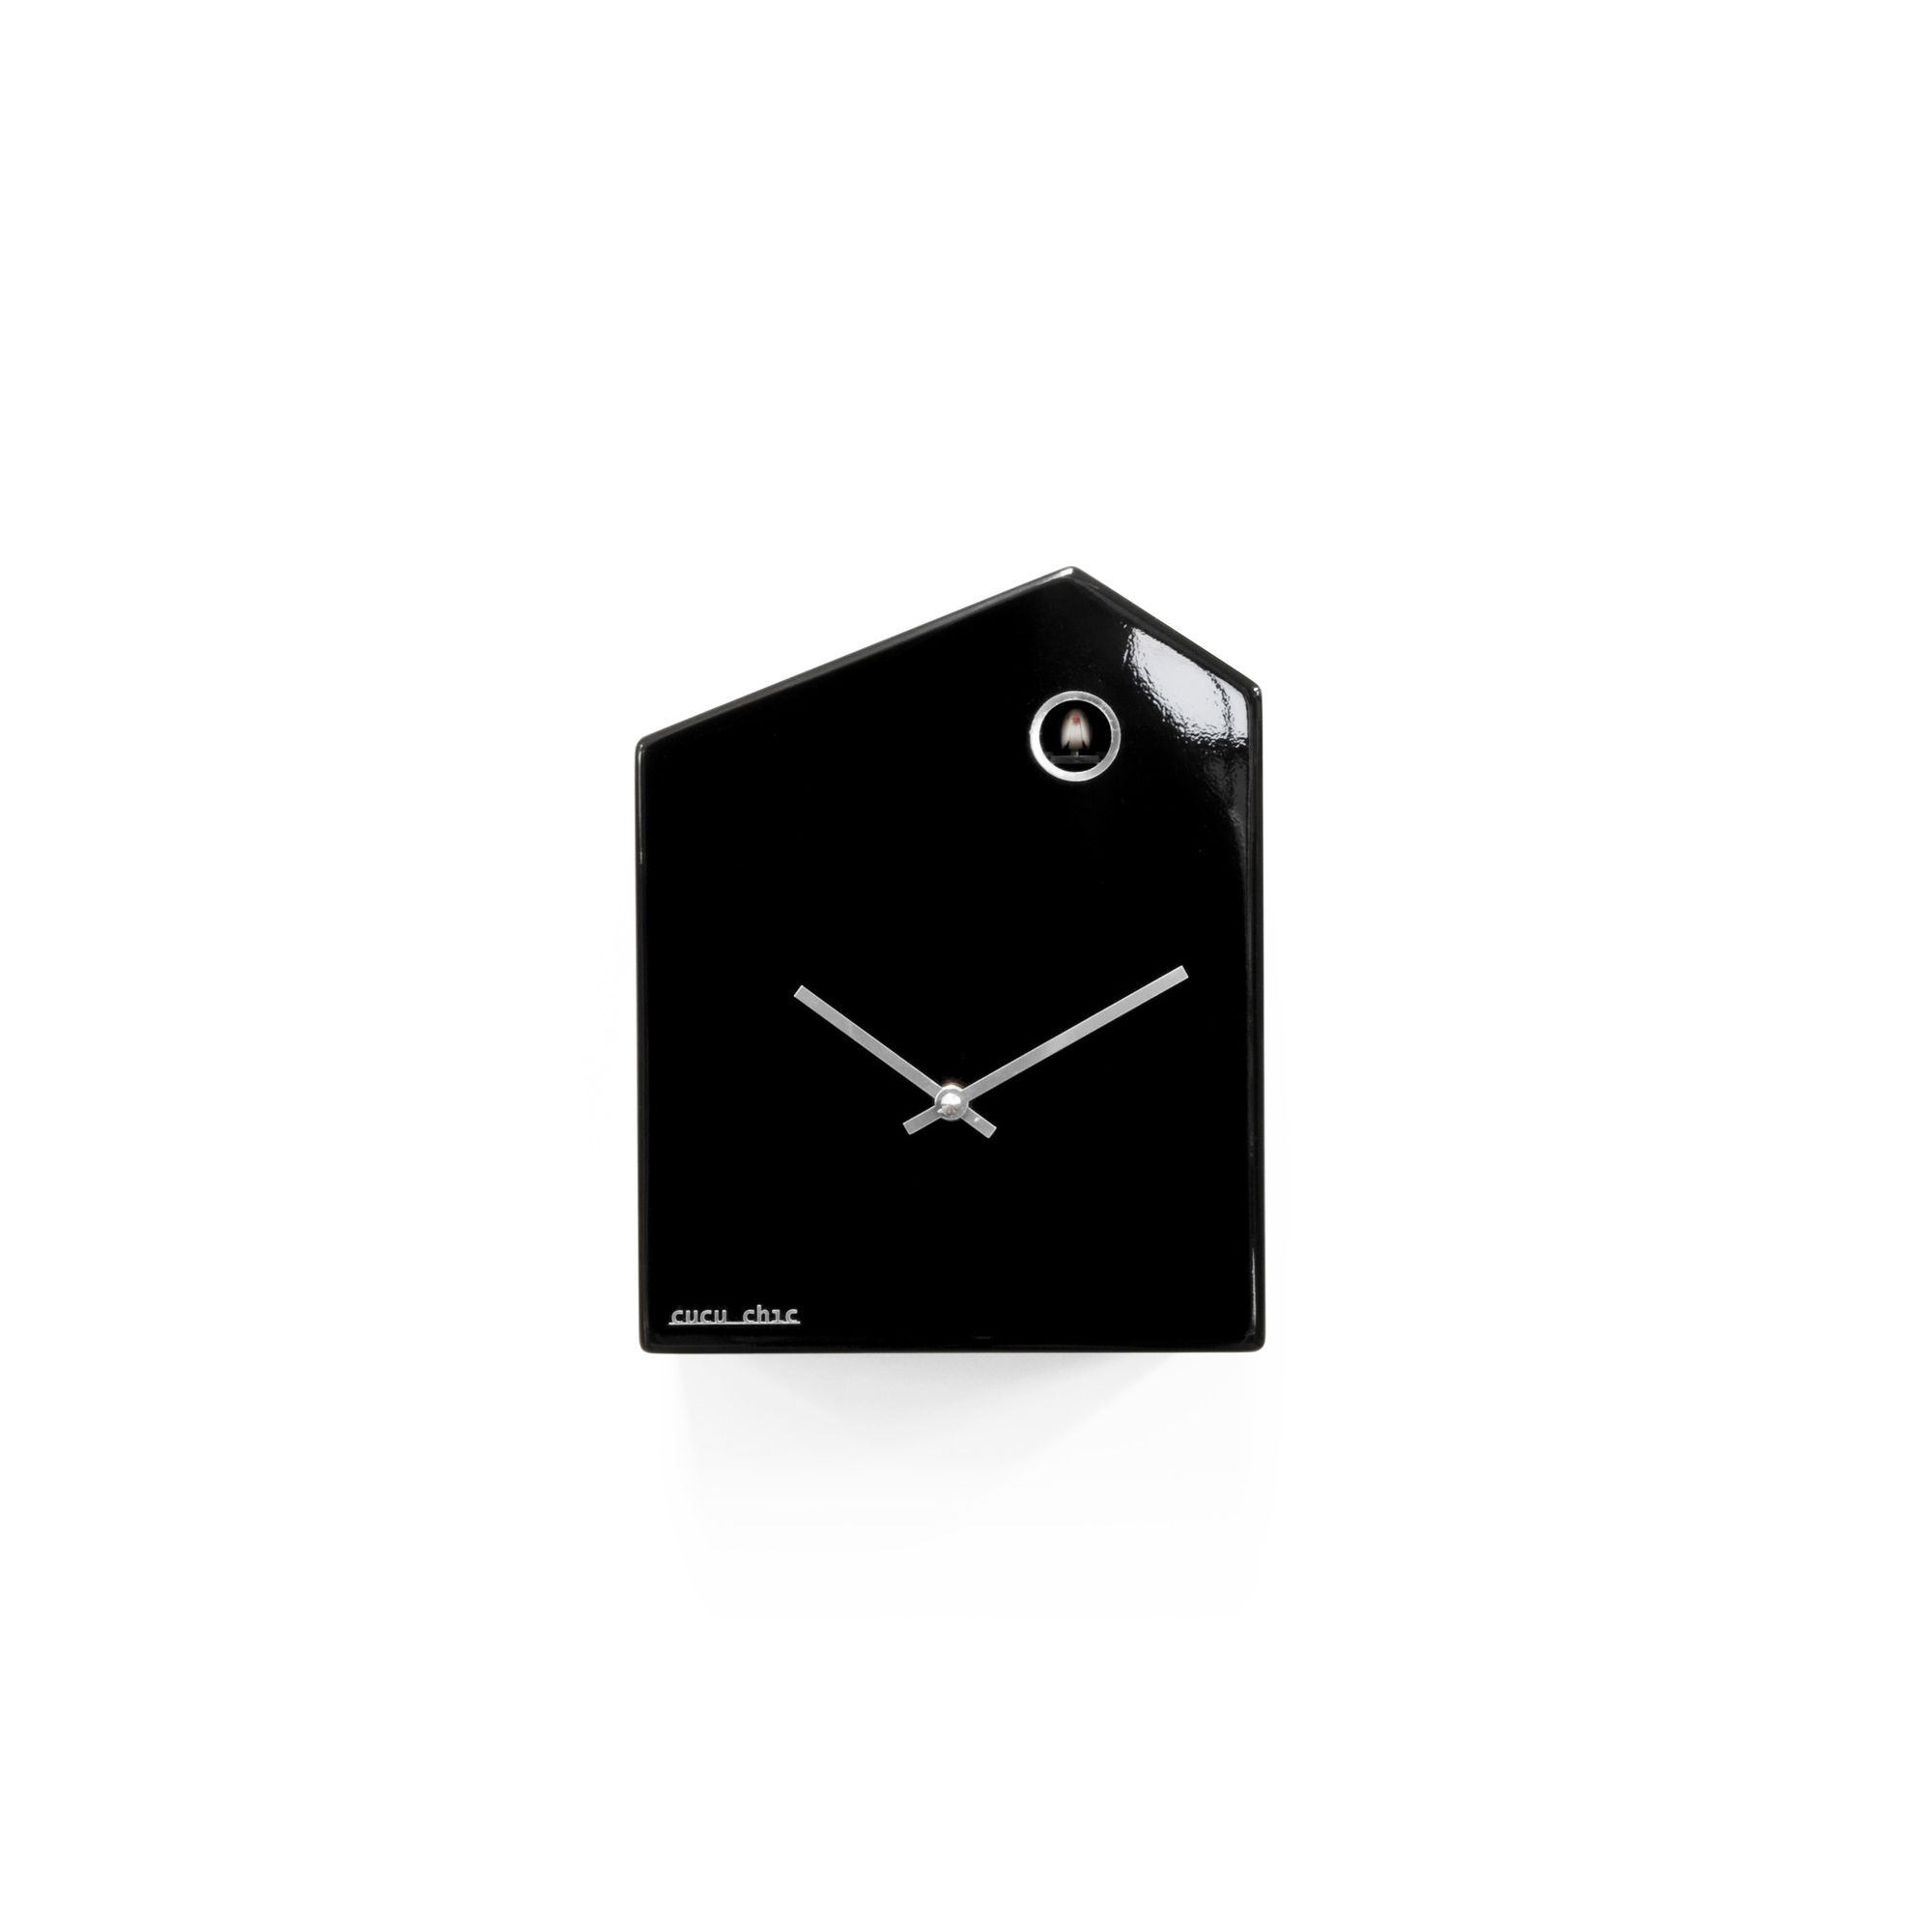 Progetti Cucu Chic Cuckoo Wall Clock - Gloss White at Tesco Direct